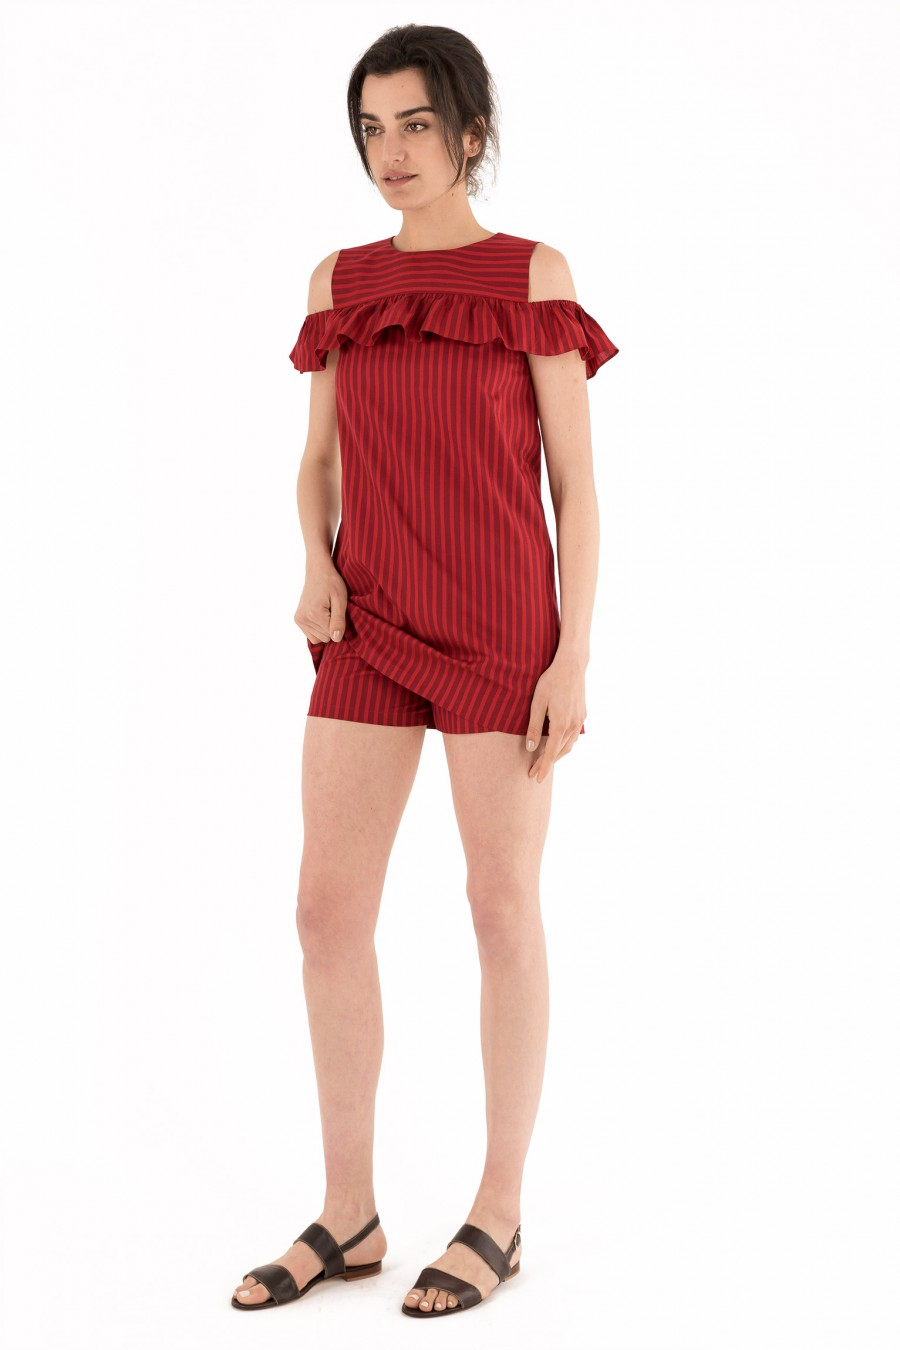 Red mini striped dress with ruches